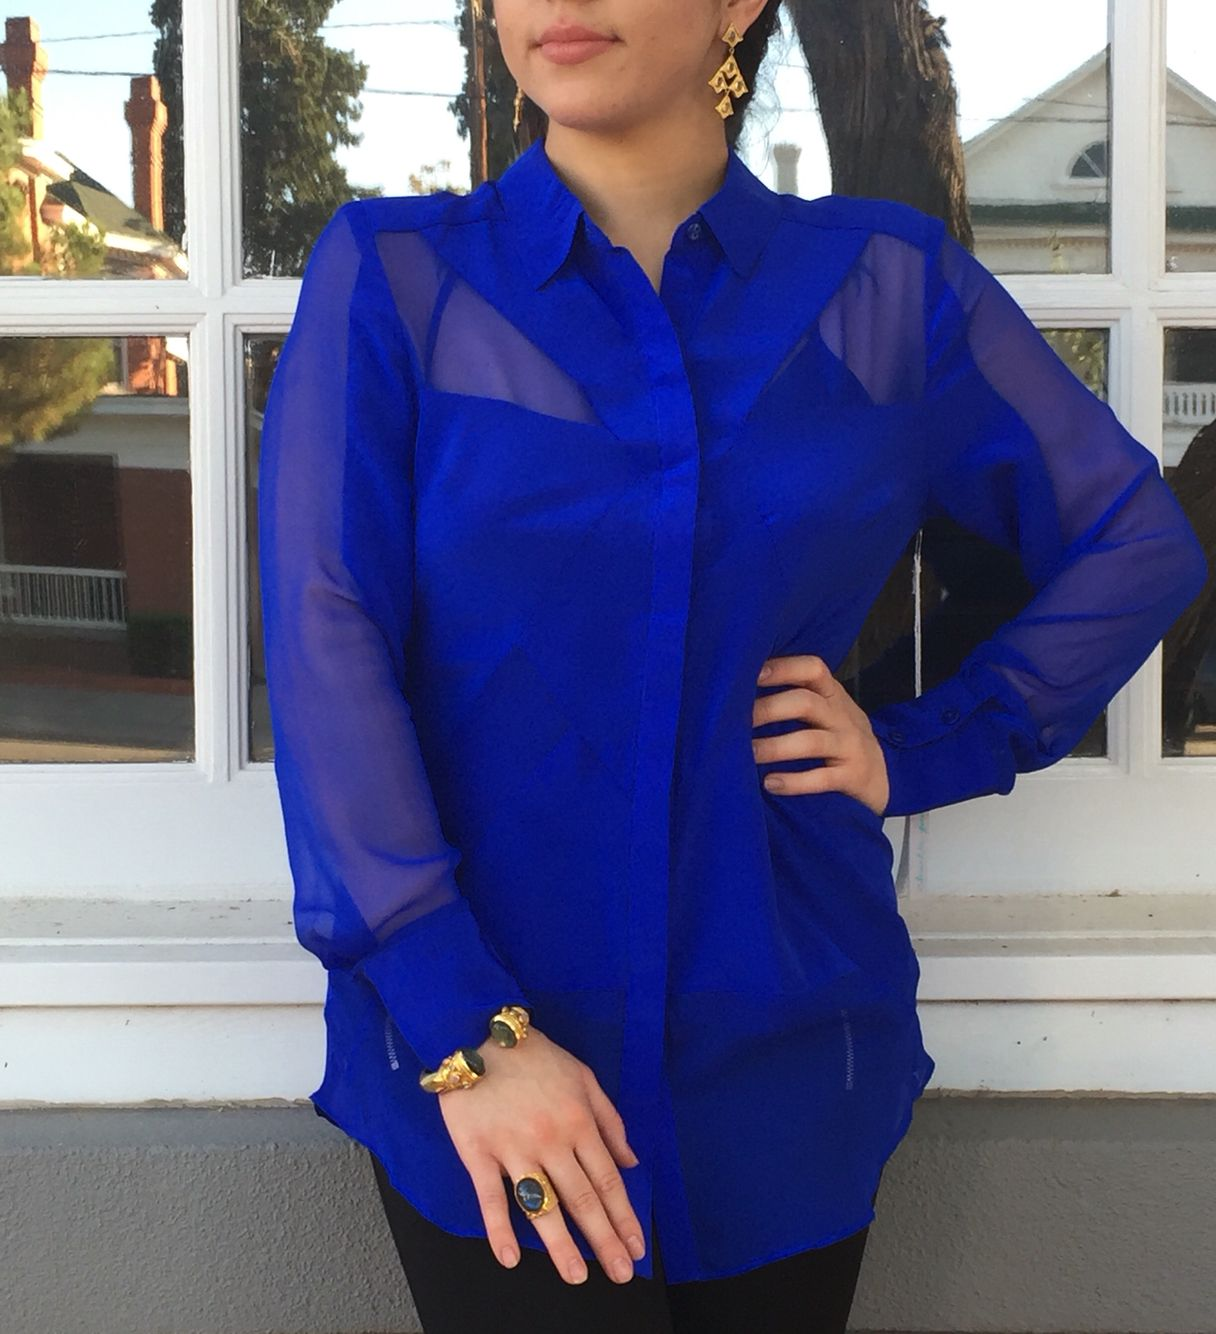 Royal blue top with Julie Voss jewelry